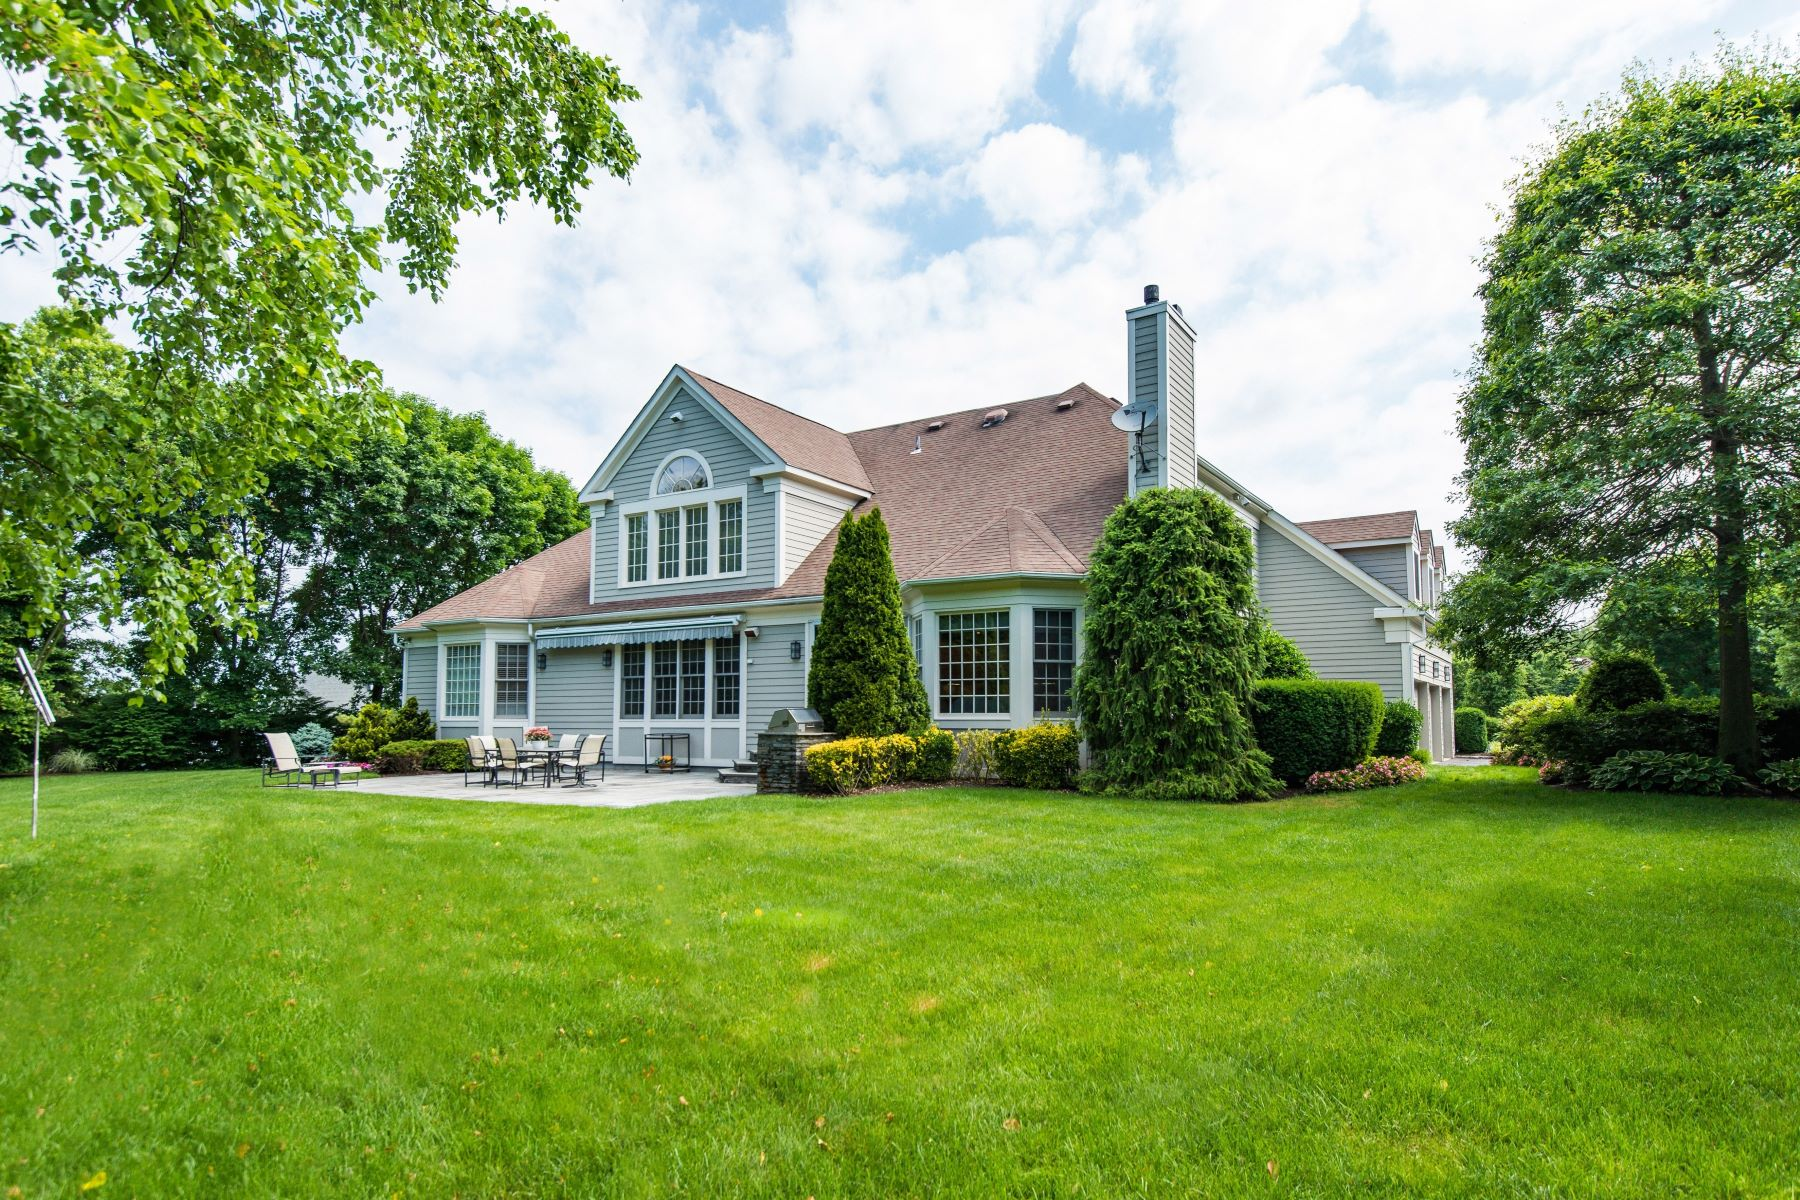 Single Family Home for Sale at 14 Stone Hill North Dr , Manhasset, NY 11030 14 Stone Hill North Dr Manhasset, New York 11030 United States